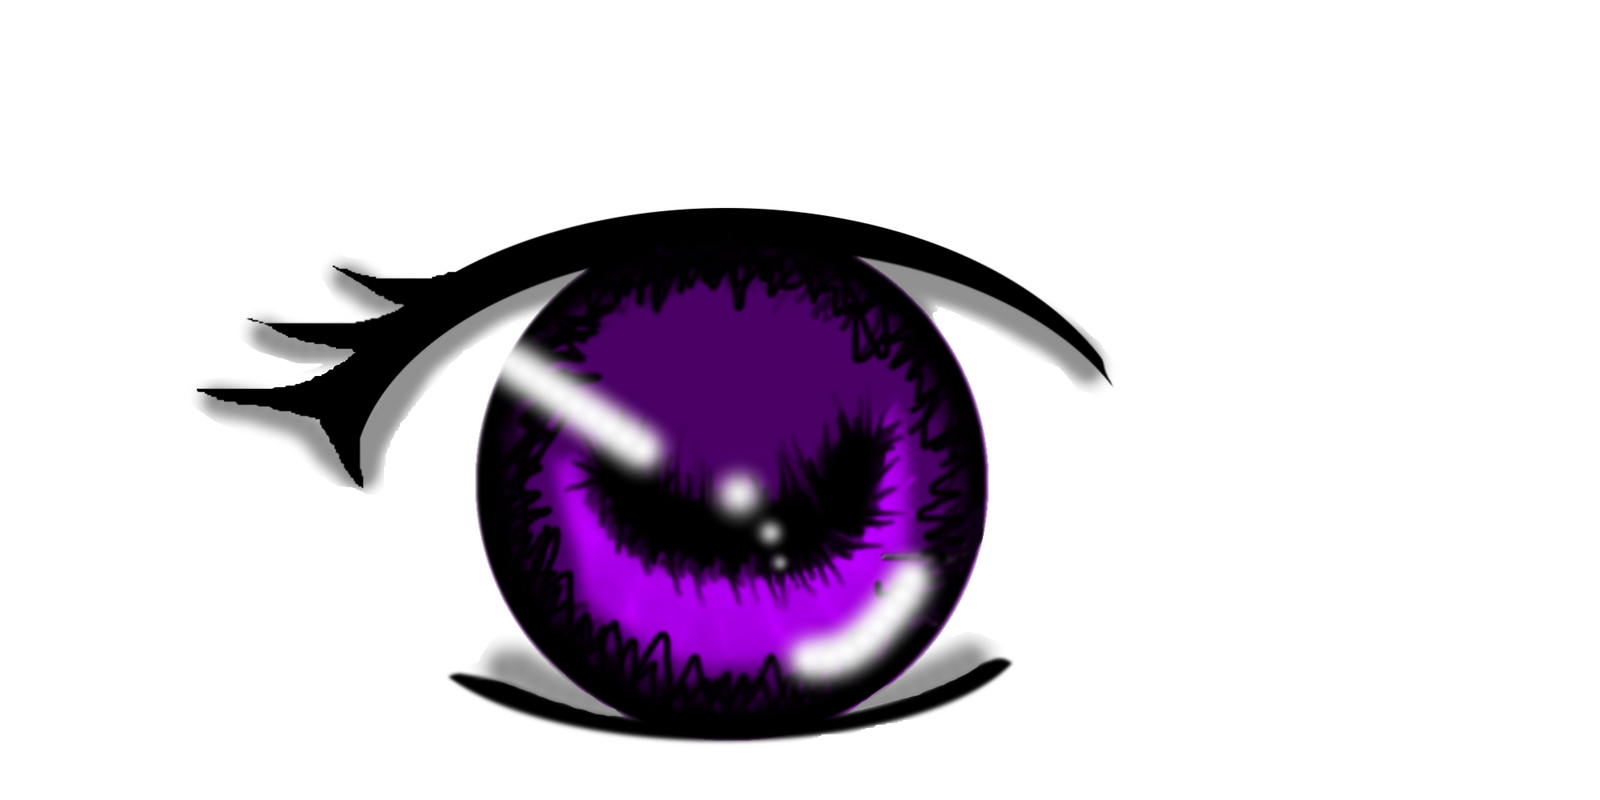 anime eyes transparent: Made In Gimp By COURTishLamb92 On DeviantART